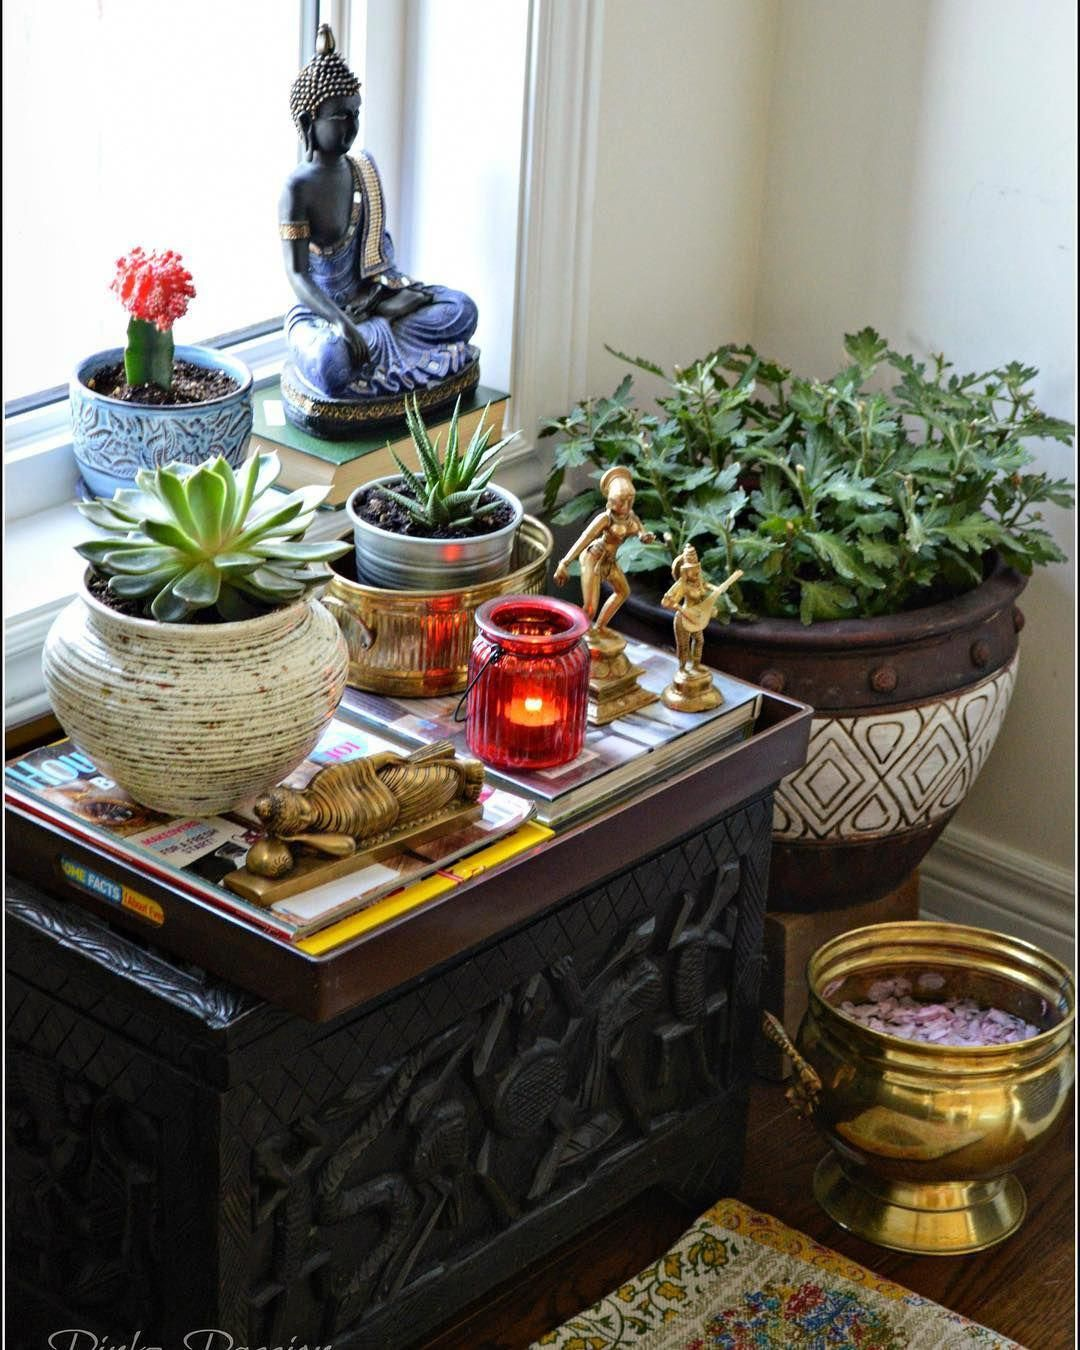 Indoor Garden Zen Place Buddha Corner Indoor Plants Styling Interiors With Plants Zen Corner Living Room Decor On A Budget Buddha Home Decor Buddha Decor